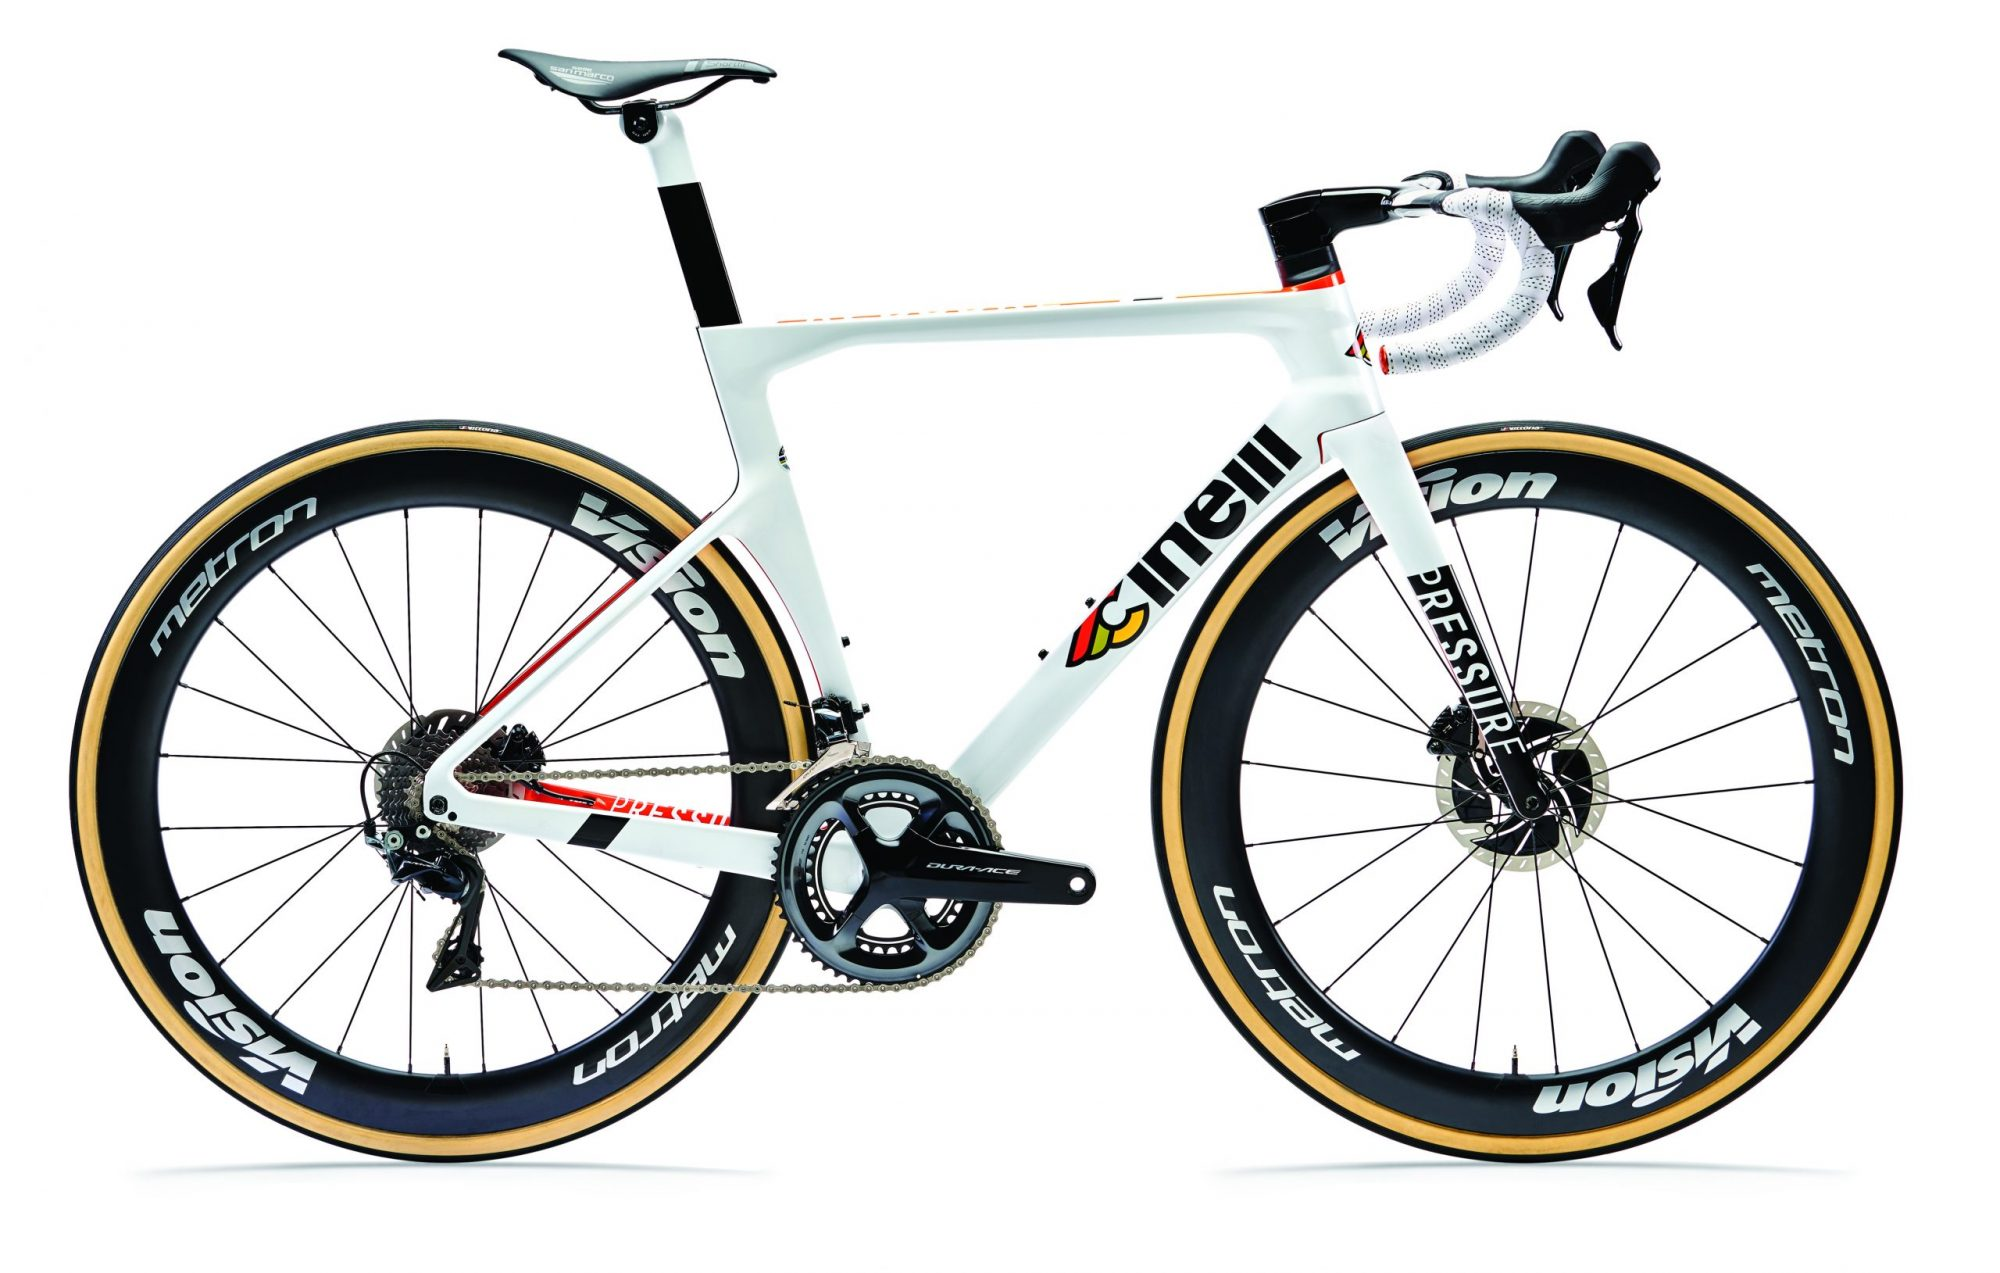 Cinelli launches new Clash-inspired aero bike – but is it a cover?